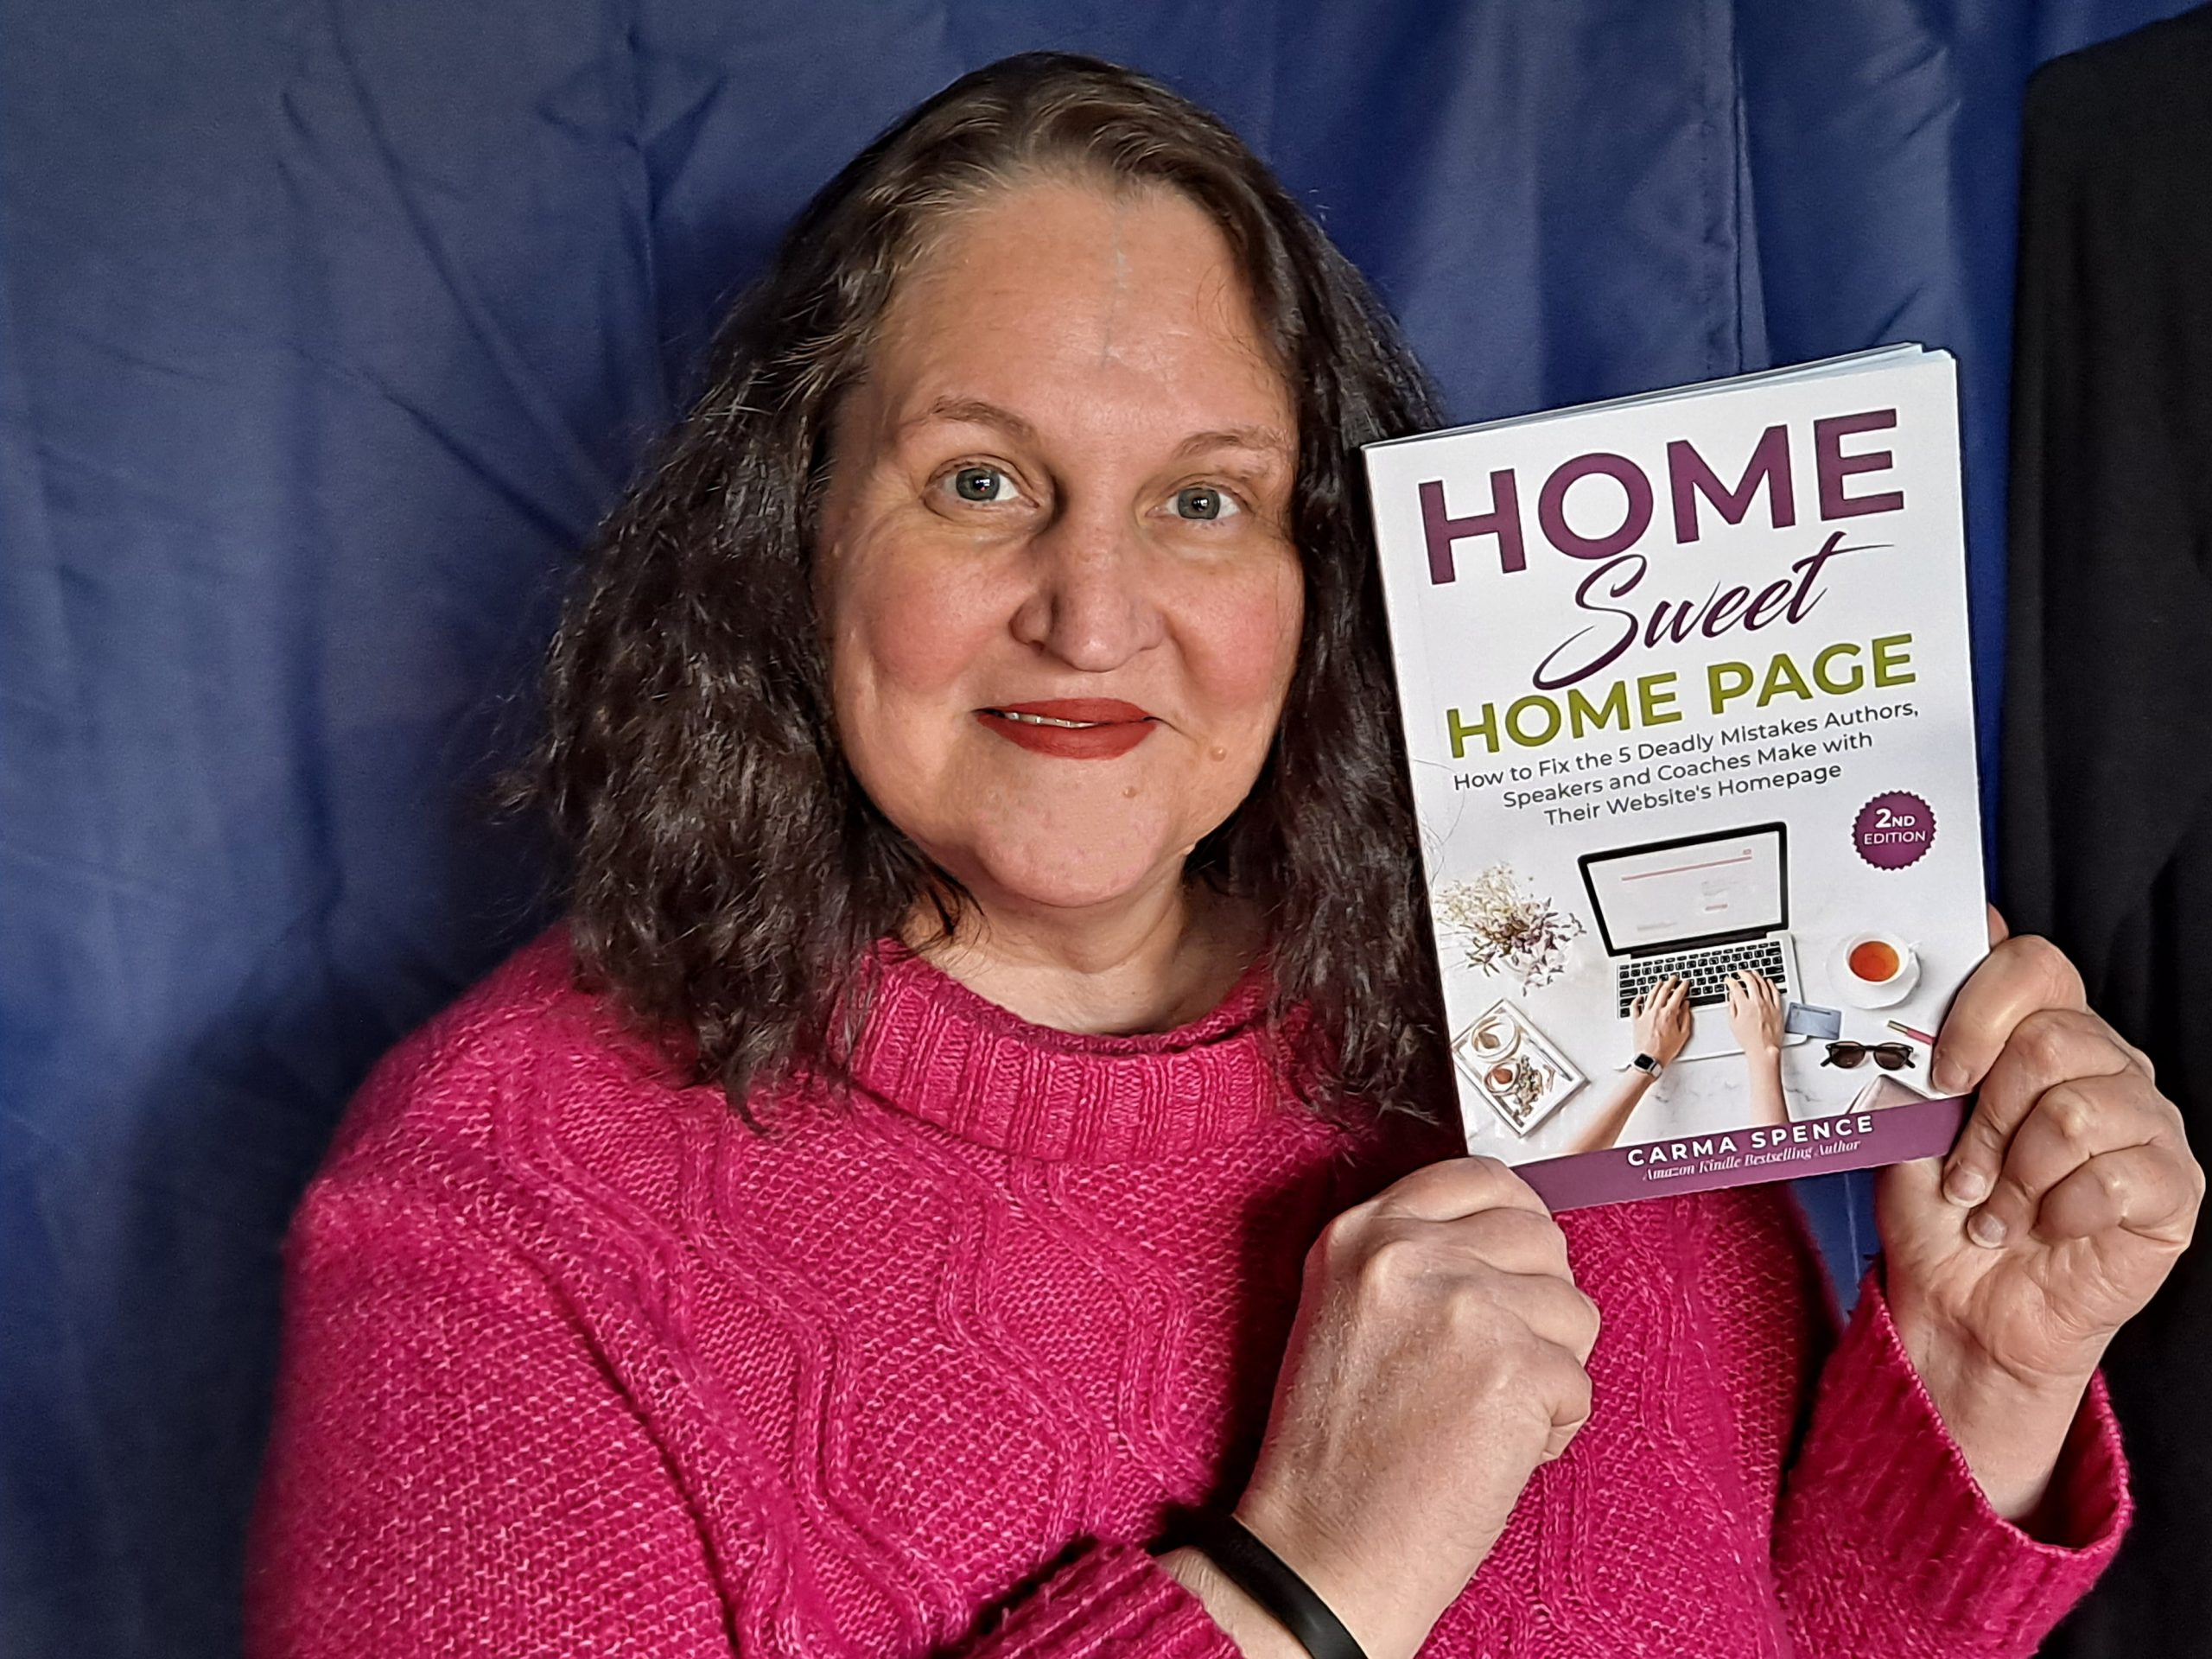 Carma holding Home Sweet Home Page 2nd Edition